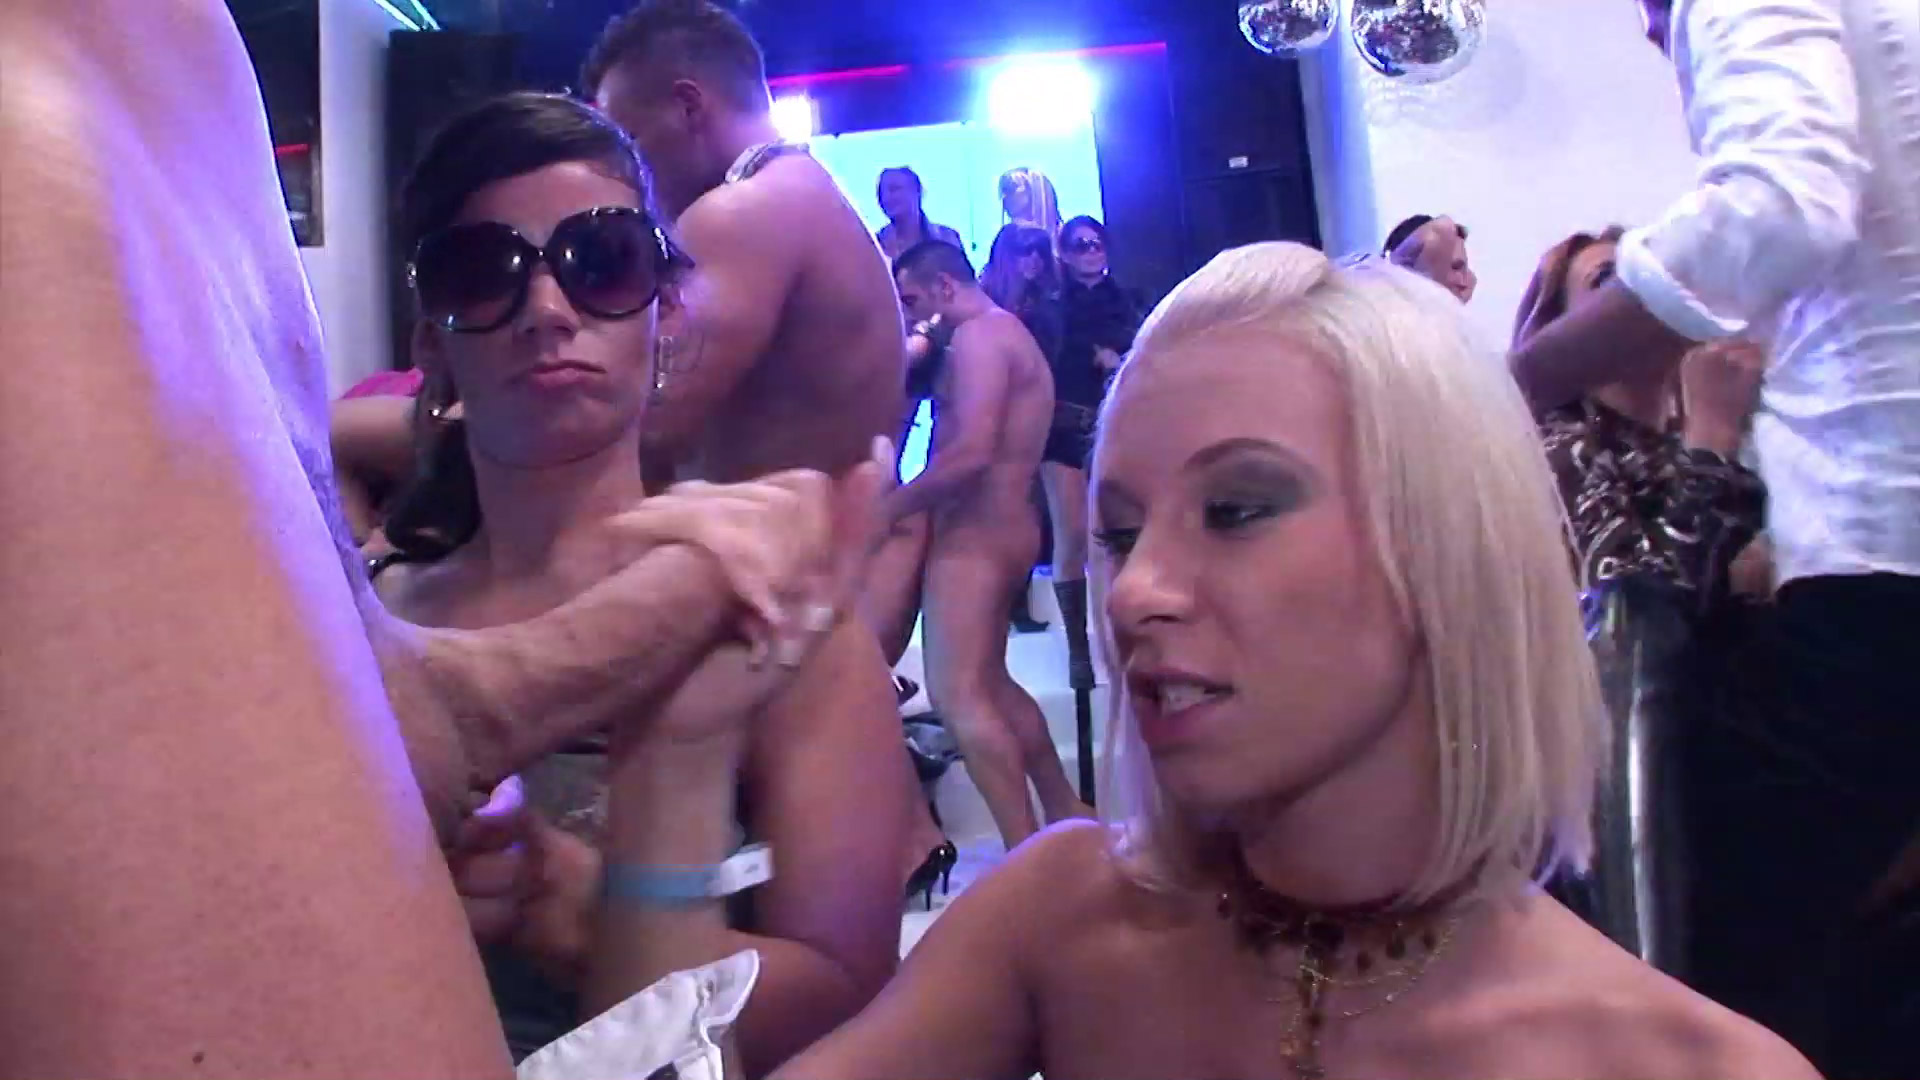 gang bang partys swingerclub dingolfing